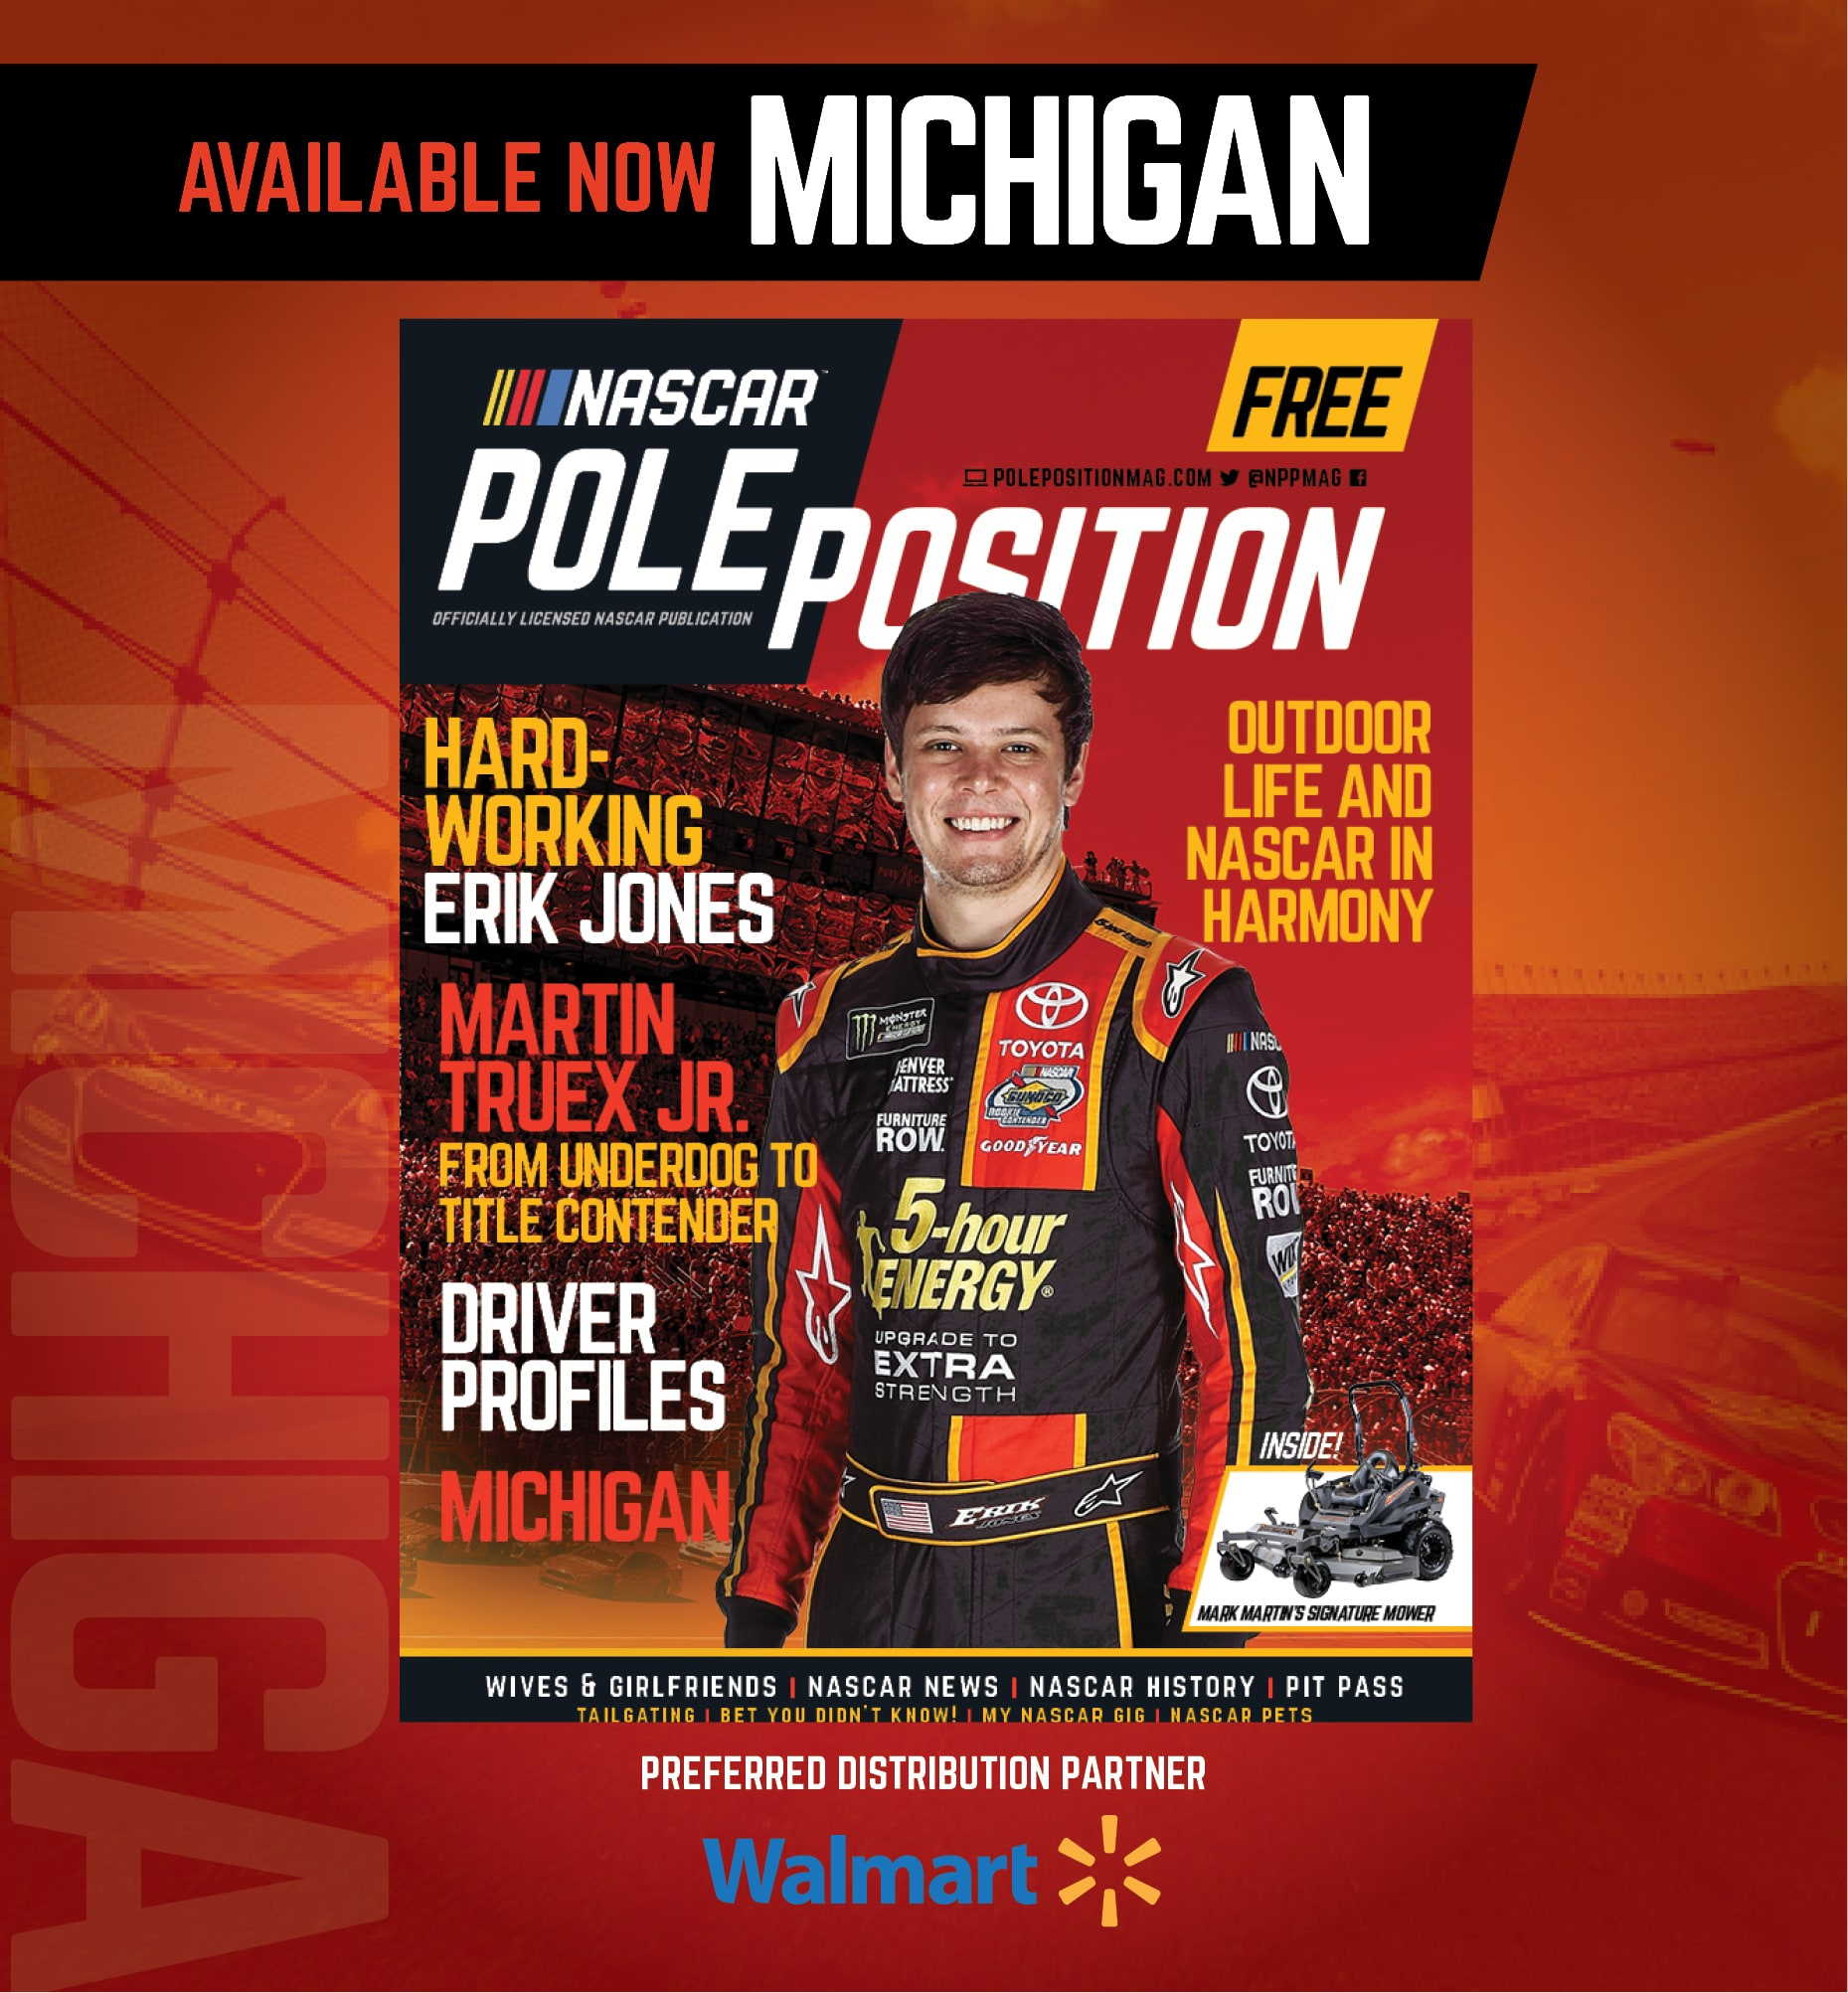 Michigan Edition of NASCAR Pole Position Available Now